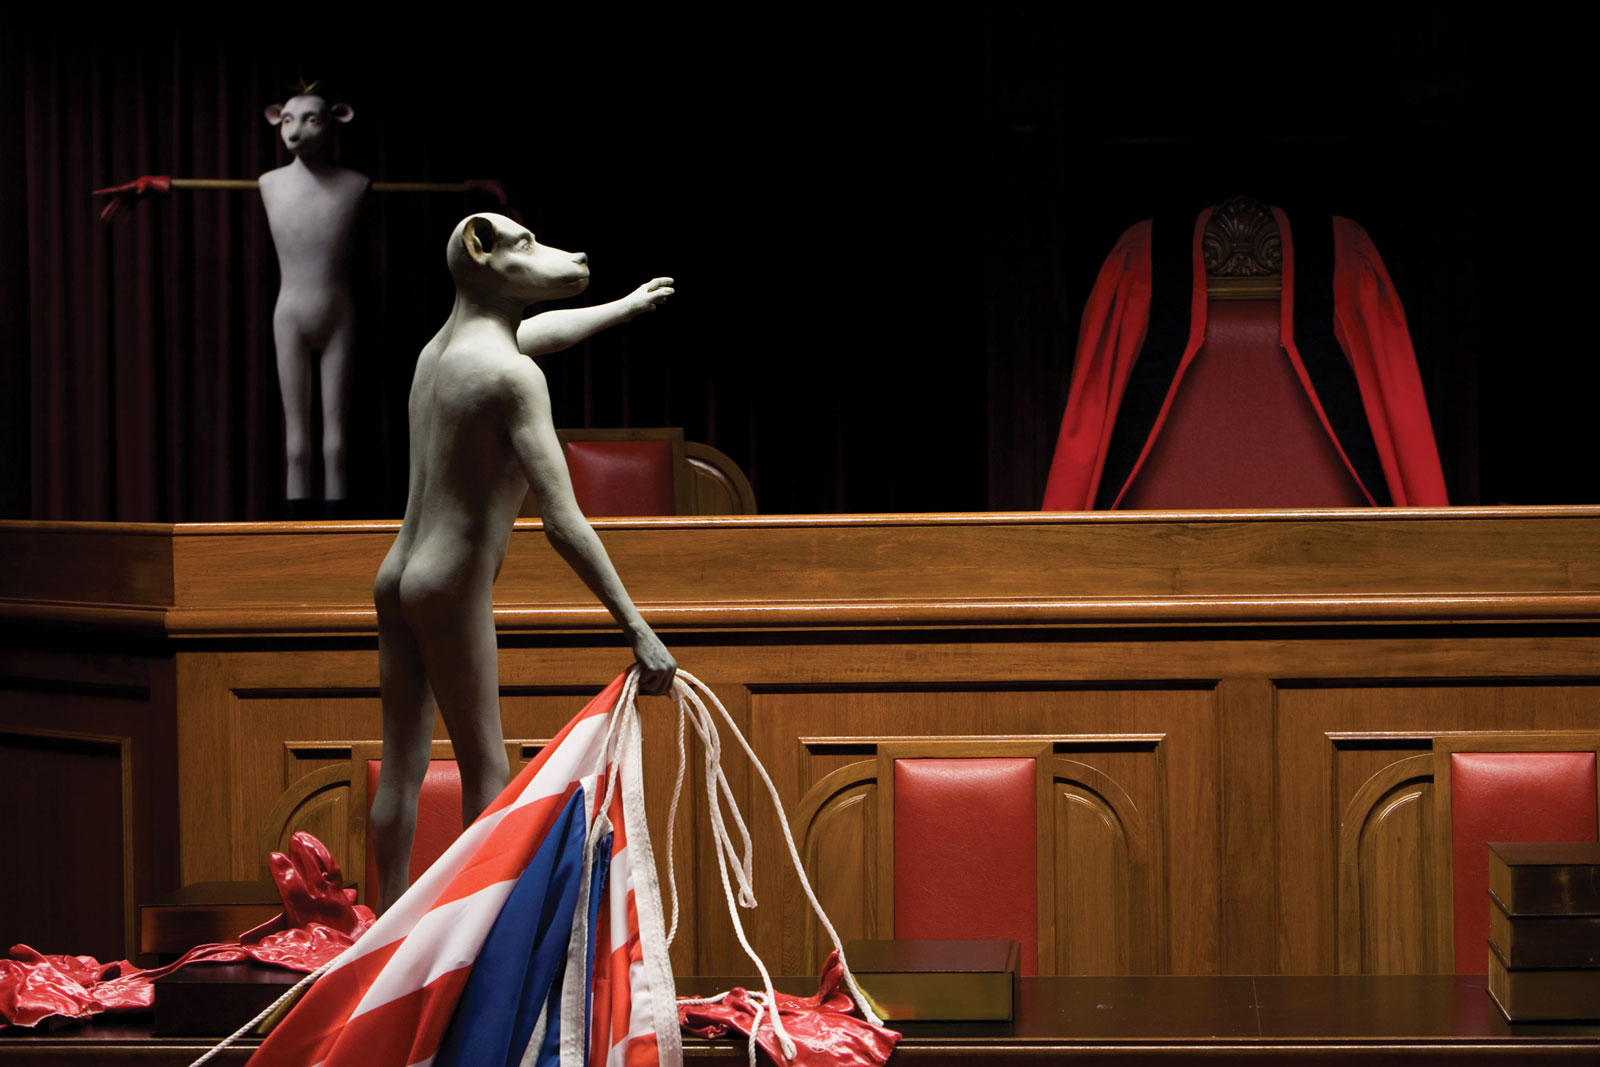 <i>Verity, Faith and Justice</i>, detail: <i>Lamb with stolen boots, Monkey boy</i> (2006). Installation: Courtroom 21 in City Hall for the first Singapore Biennale, 2006. Dimensions set to room. Fiberglass; oil paint; synthetic clay; Dutch and British East India Company flags; used industrial-strength gloves; Singaporean judicial ceremonial robe sewn by a judicial seamstress in Cape Town. Not shown: sculpted figures (<i>Beast</i>, <i>Bird</i>, <i>Custodian</i>, <i>Defendants</i>, <i>Harbinger in correctional uniform</i>, <i>Hobbled ruminant</i>); wood walking sticks; found clothing; prisoner's uniform from pre-democracy South Africa; shackles loaned from Pollsmoor Maximum Security Prison in South Africa. Photograph by Luke Tan